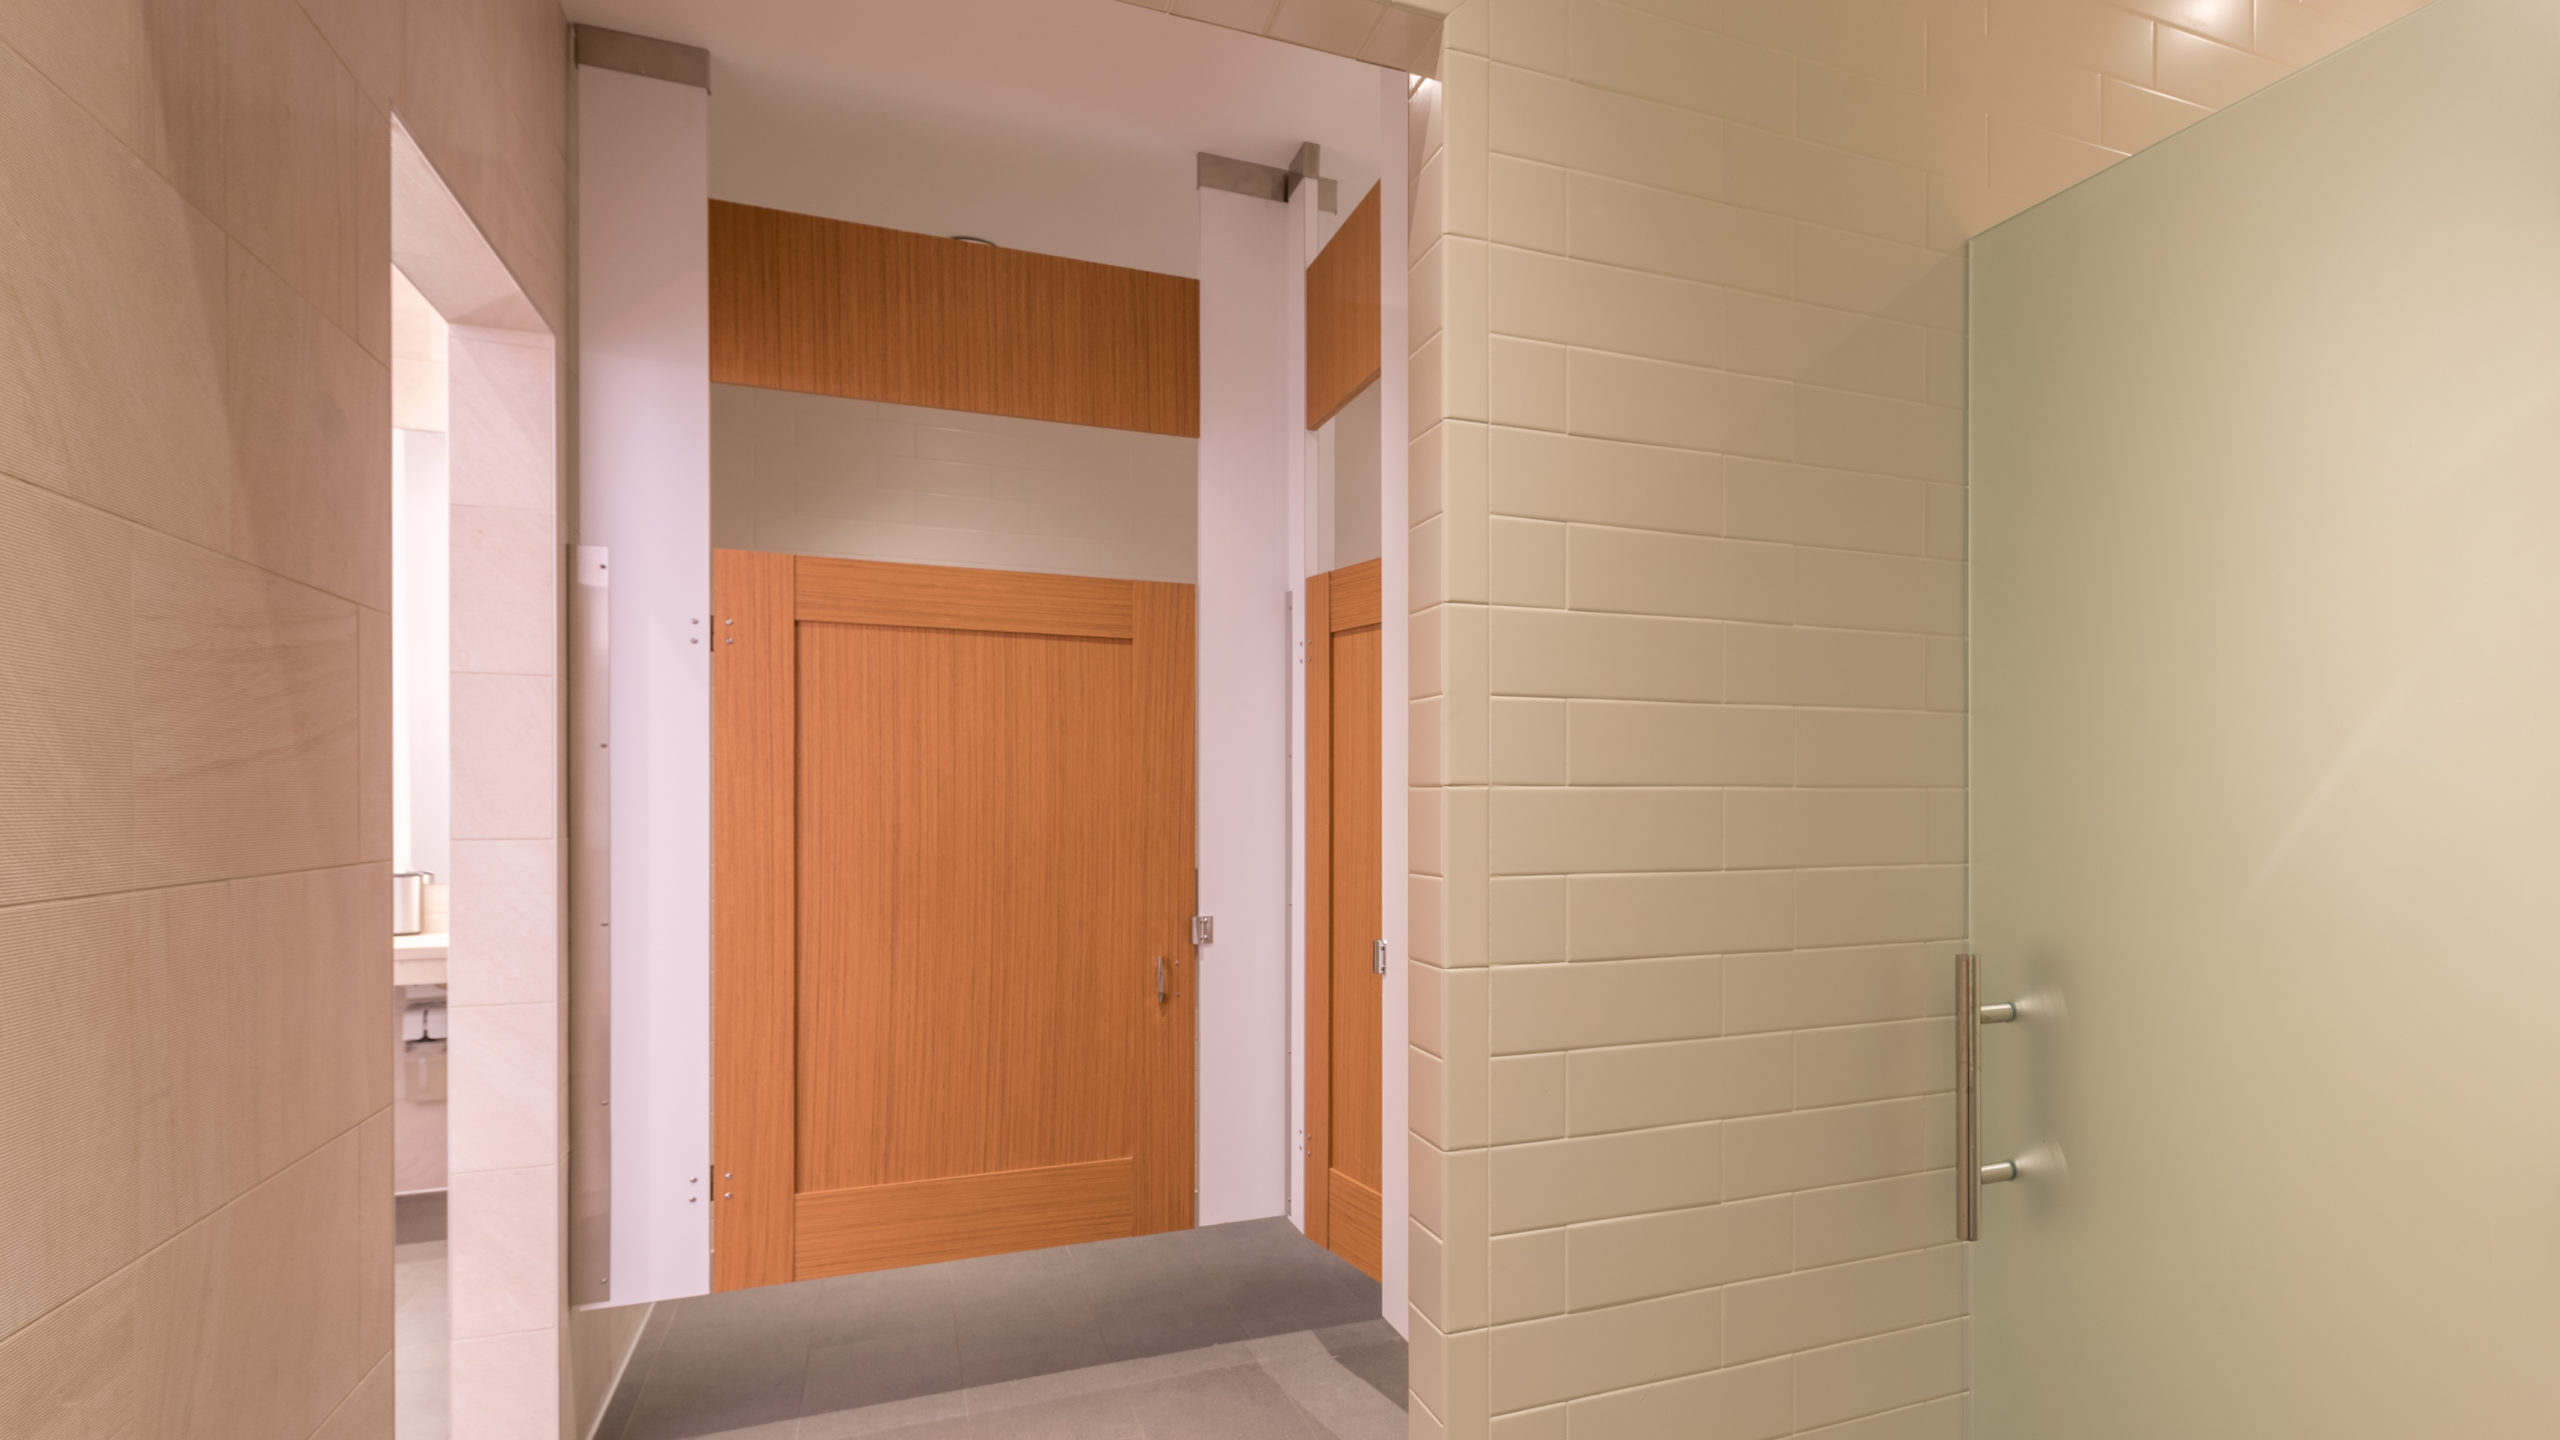 White subway tiled trendy business gym bathroom shows ceiling hung honey colored, wood grain captured panel doors with transom. Frosted shower door.